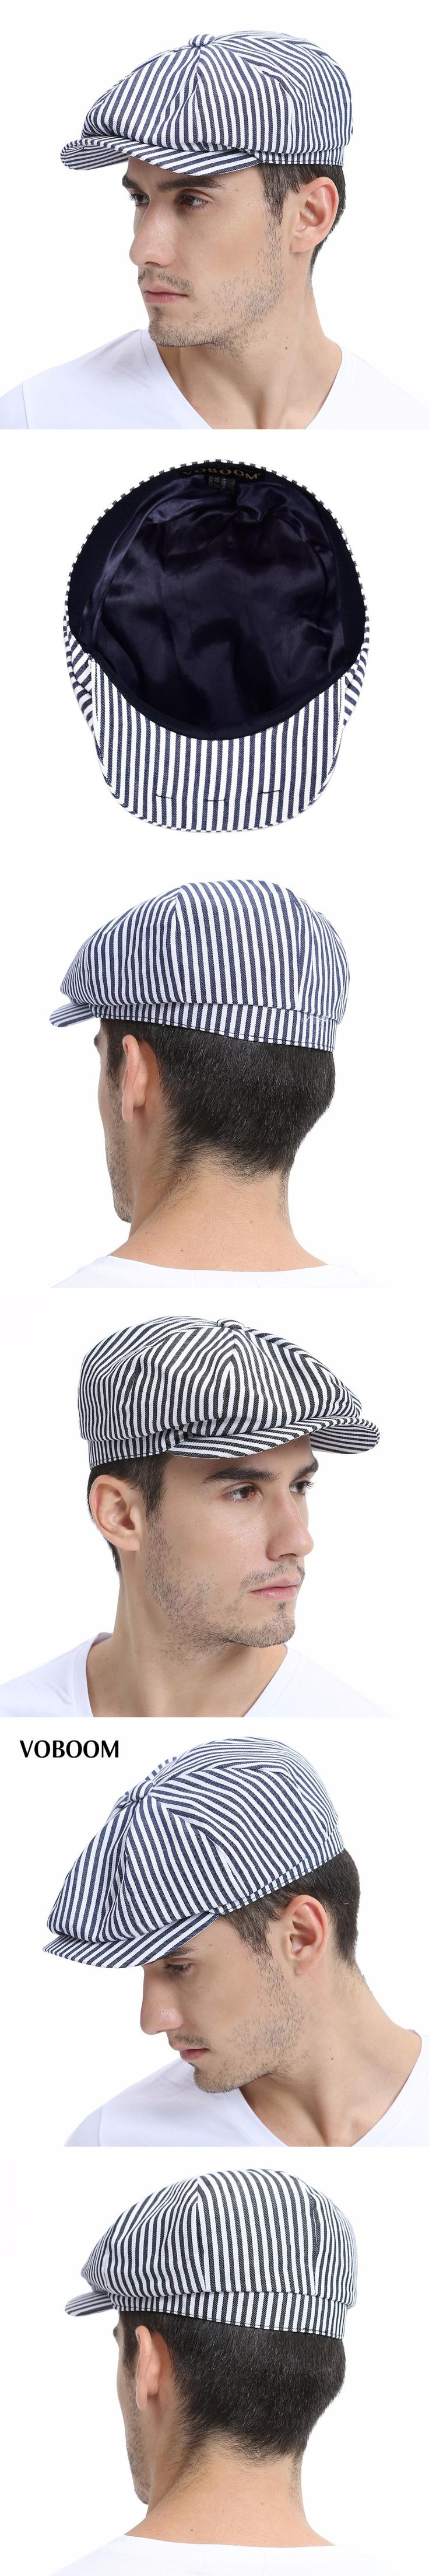 VOBOOM Summer Newsboy Flat Cap Black Navy Blue Stripe  Ivy Caps 8 Panel Design Men Women Cotton Gatsby Hat 146